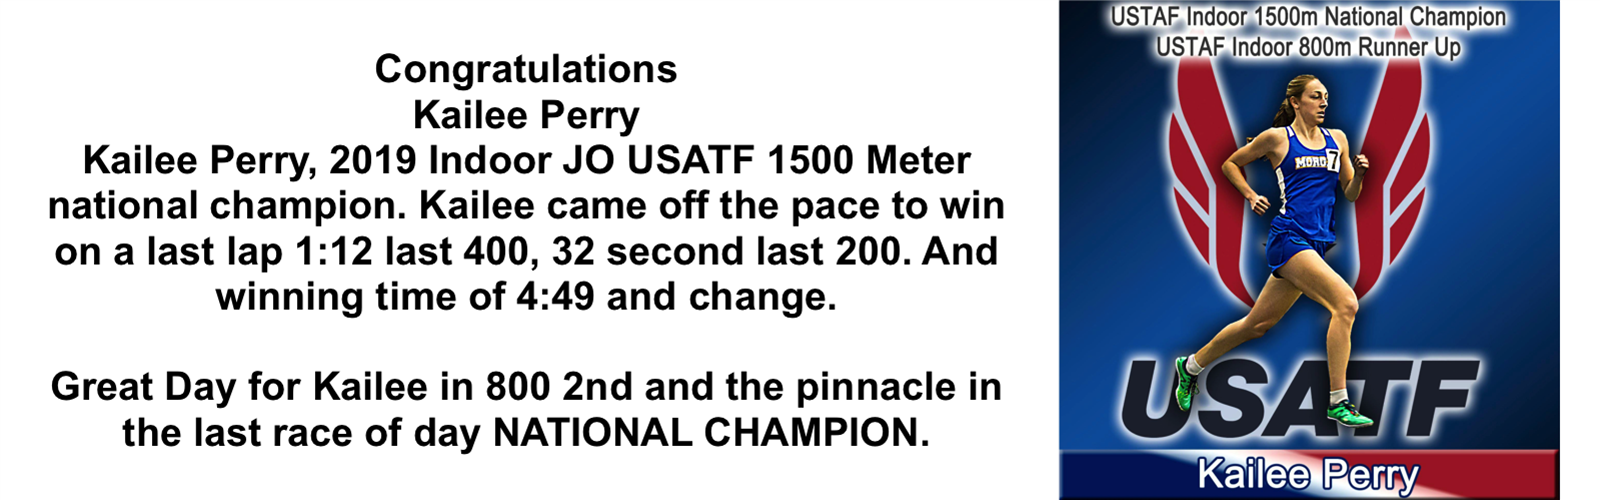 Kailee Perry, 2019 Indoor USATG 1500M NATIONAL CHAMPION